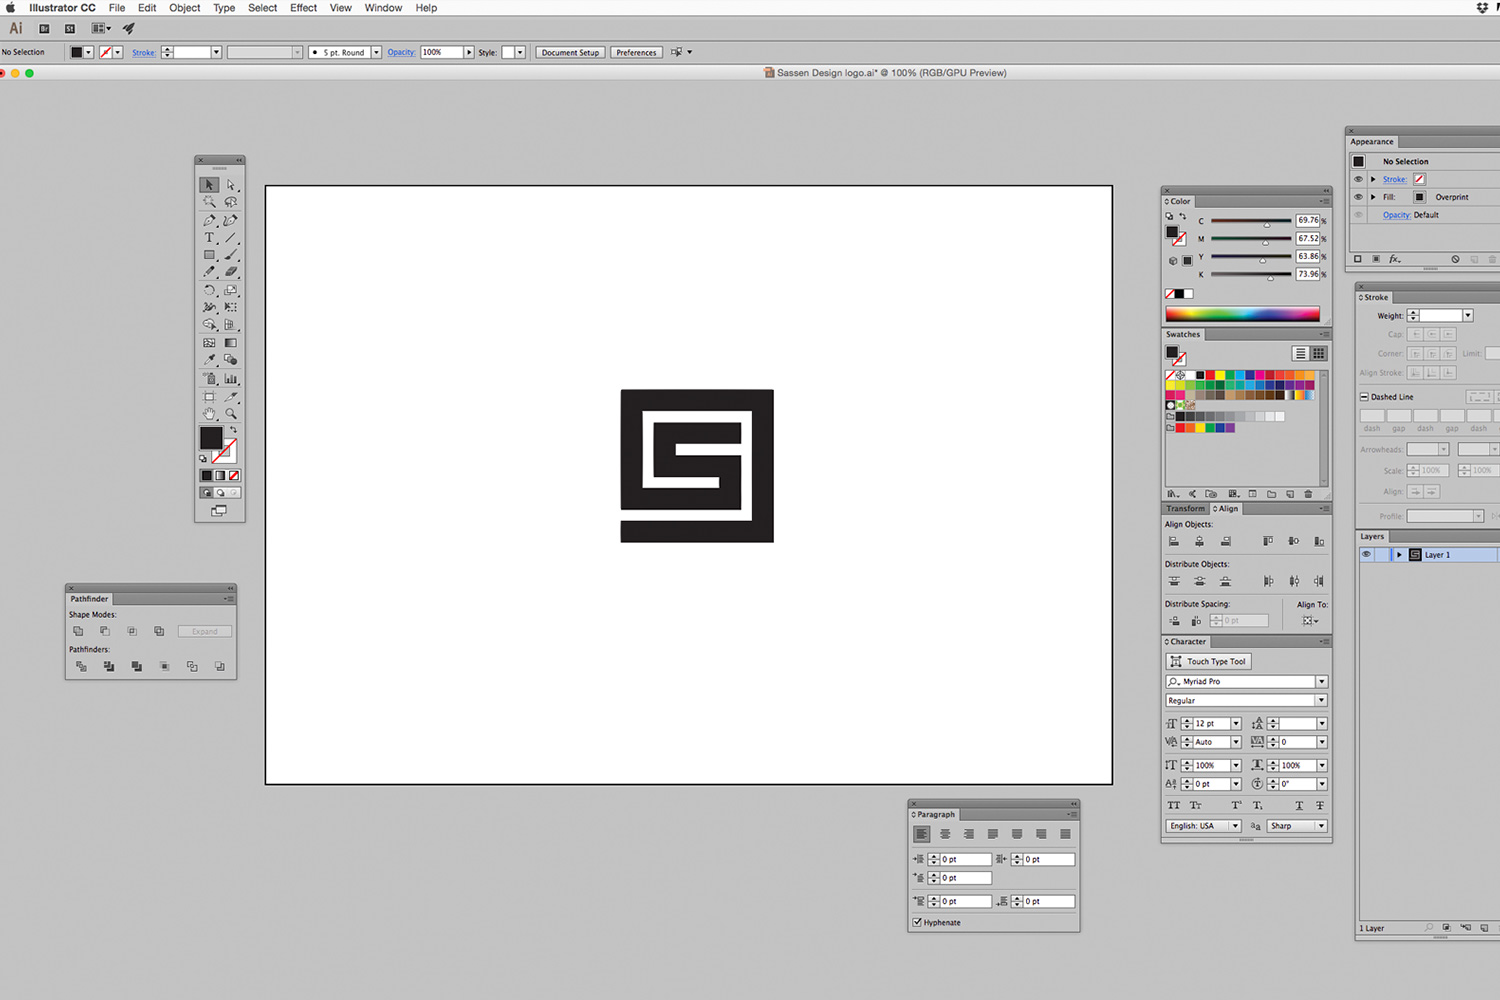 Step 1 The artwork is created in Adobe Illustrator and exported as a .DWG file